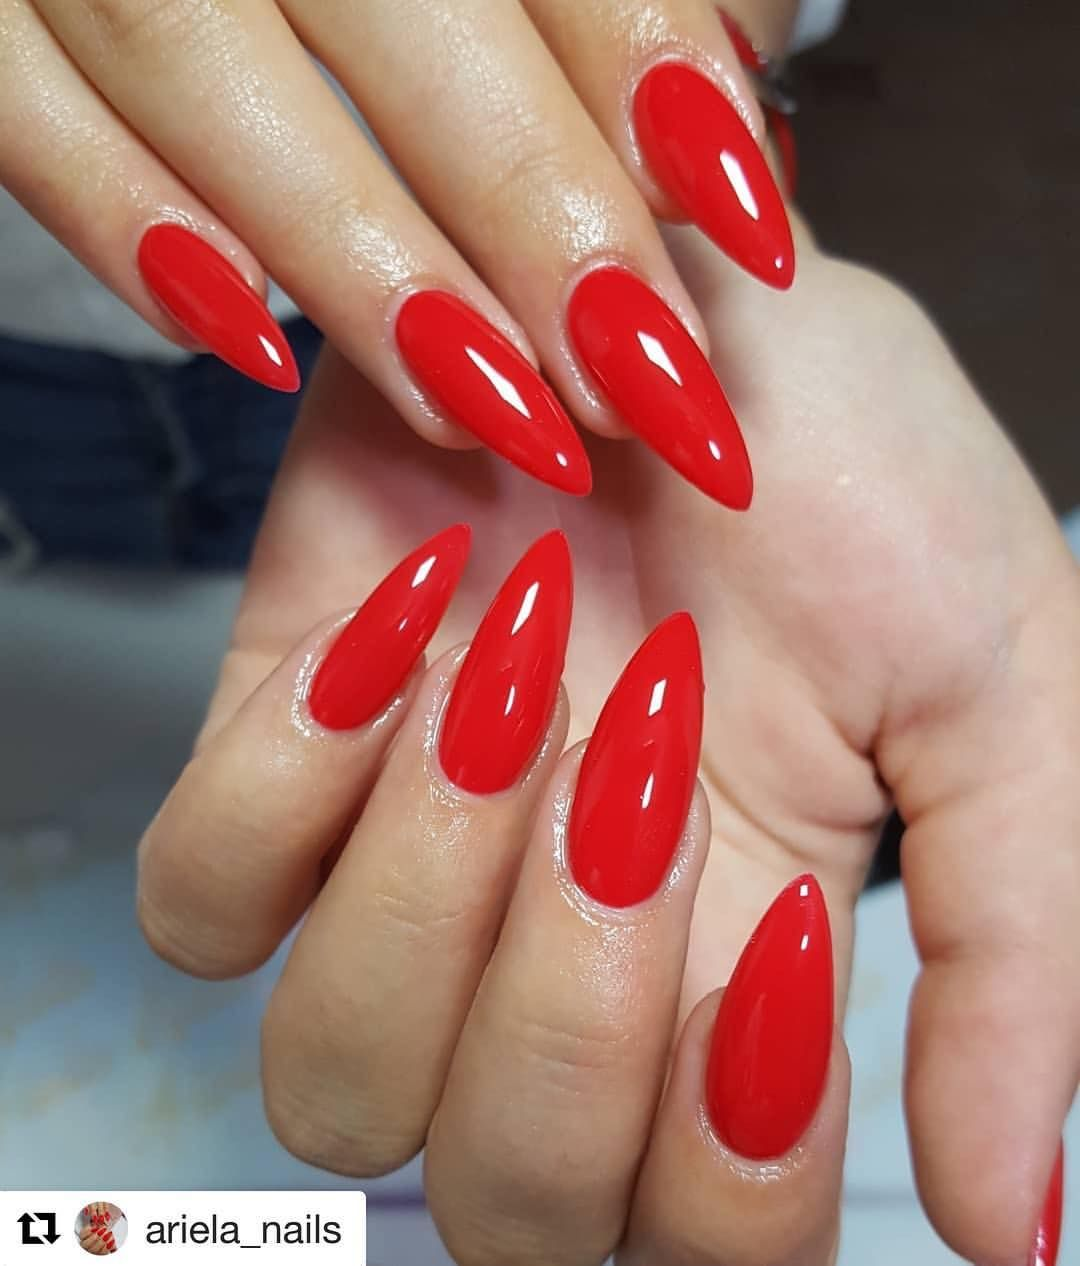 Rednails Stilettonails Firenails Nailsart Lovethiscolor Pointy Acrylic Nails Red Stiletto Nails Red Acrylic Nails